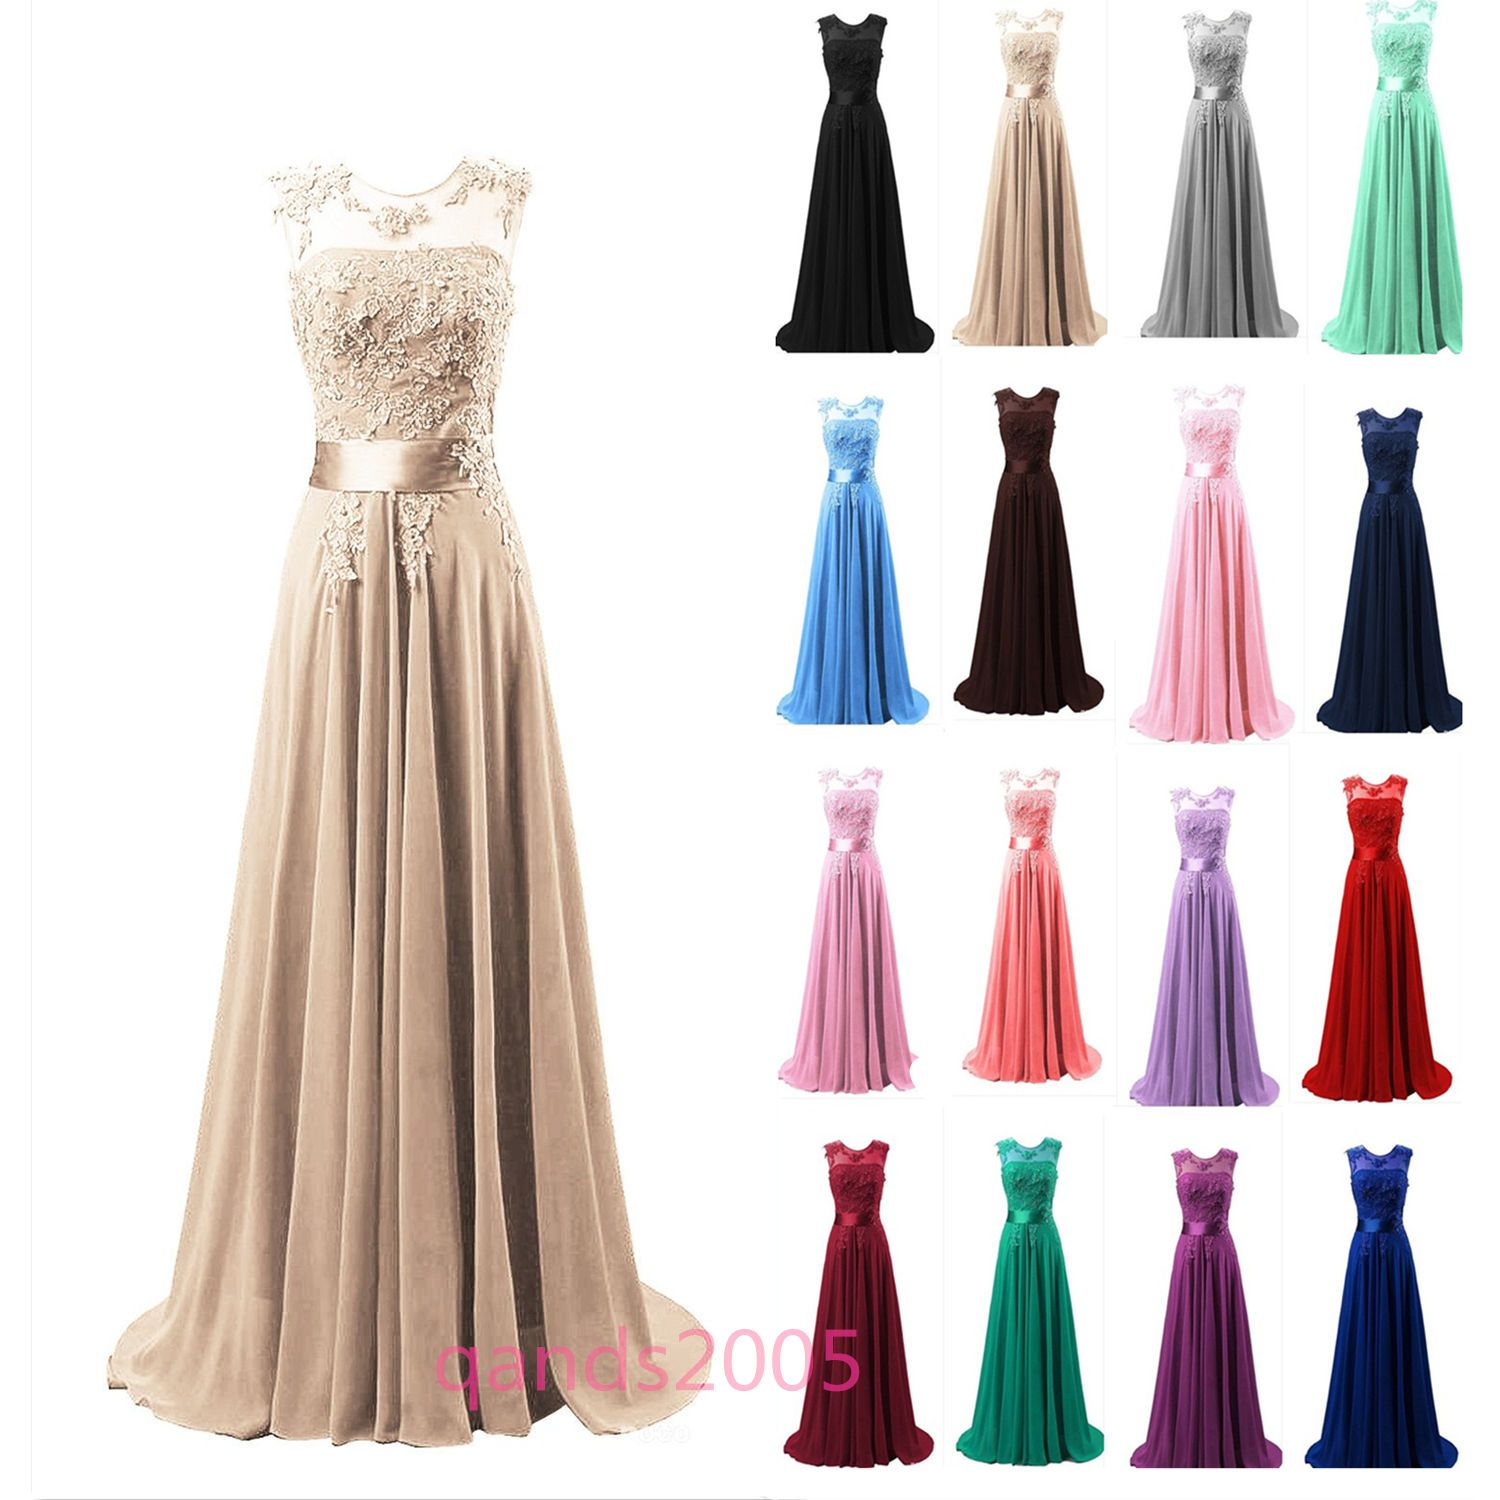 Cap Sleeves Prom Cocktail Gowns Long Party Evening Bridesmaid Dresses Size 12 14 Maxi Dress Prom Prom Dresses Long Pink Ball Gowns Prom [ 1500 x 1500 Pixel ]